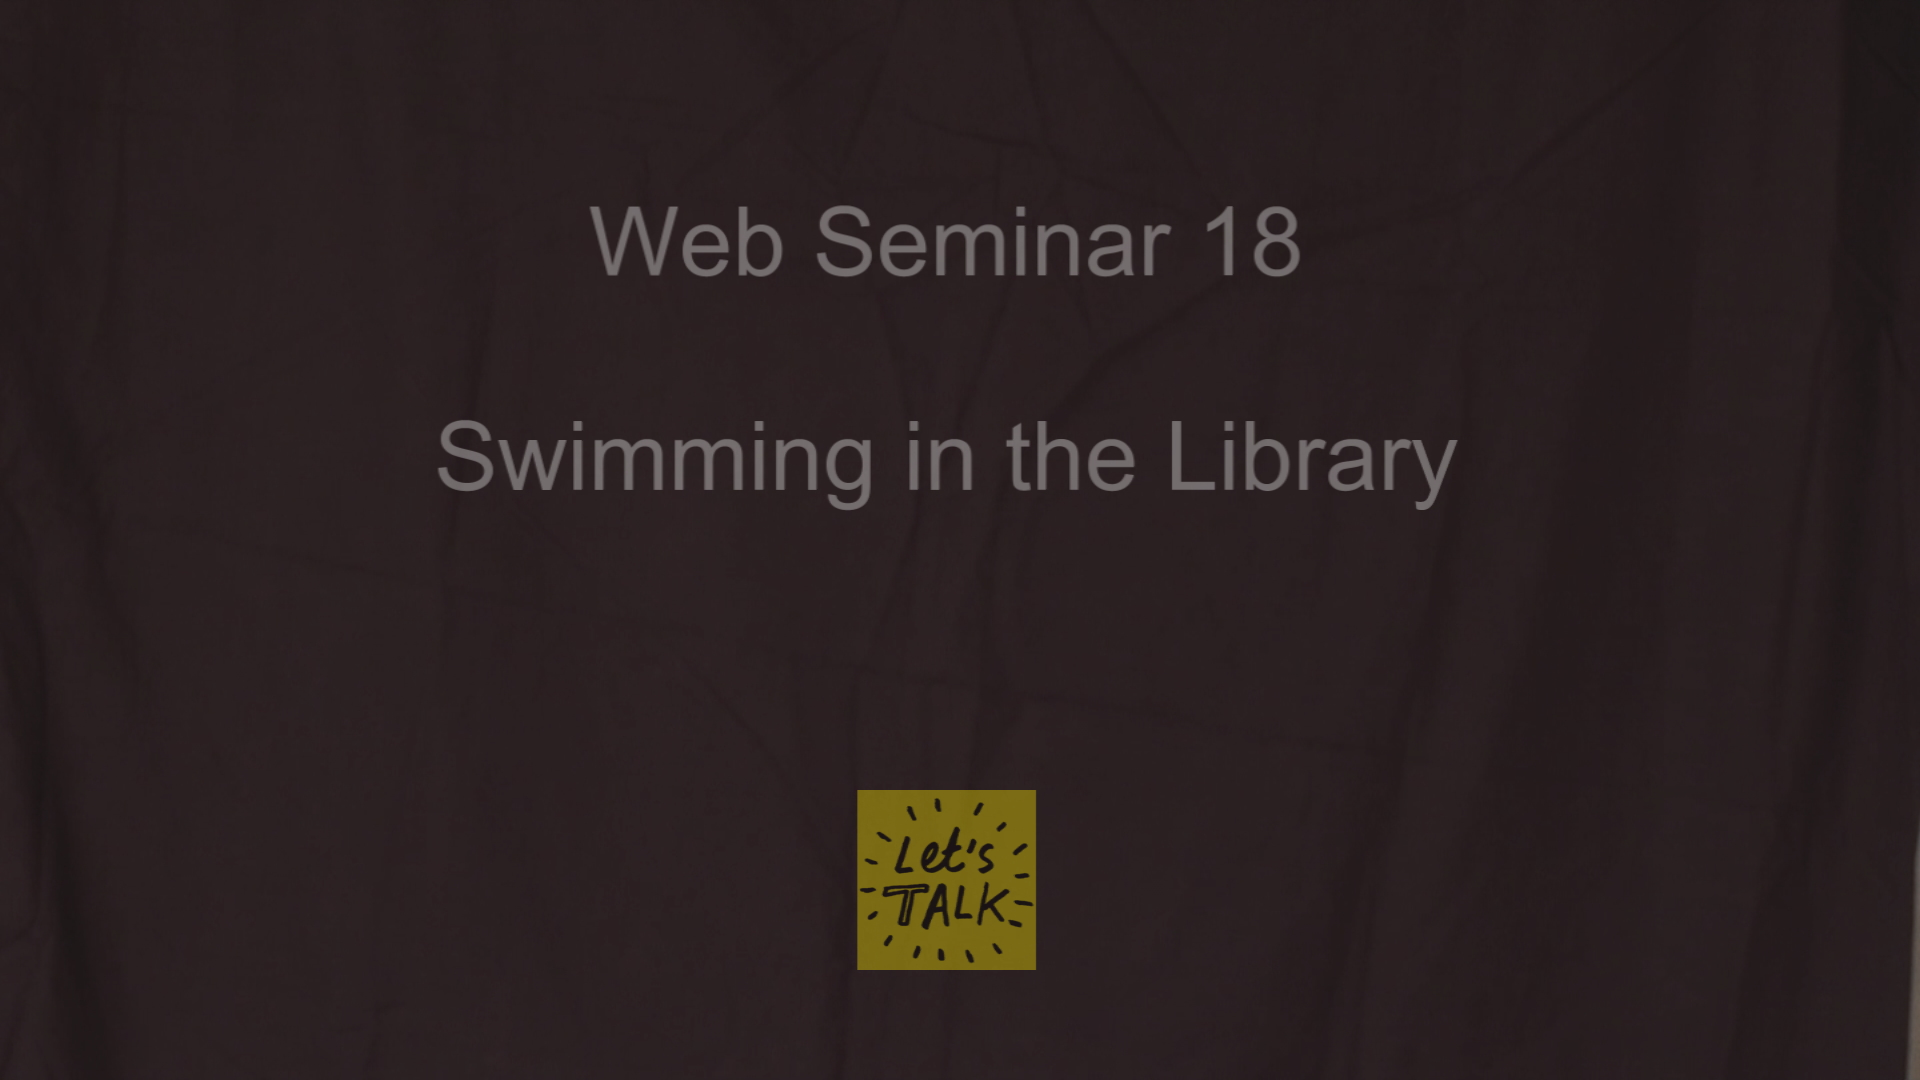 Web Seminar 18 -  Swimming in the Library